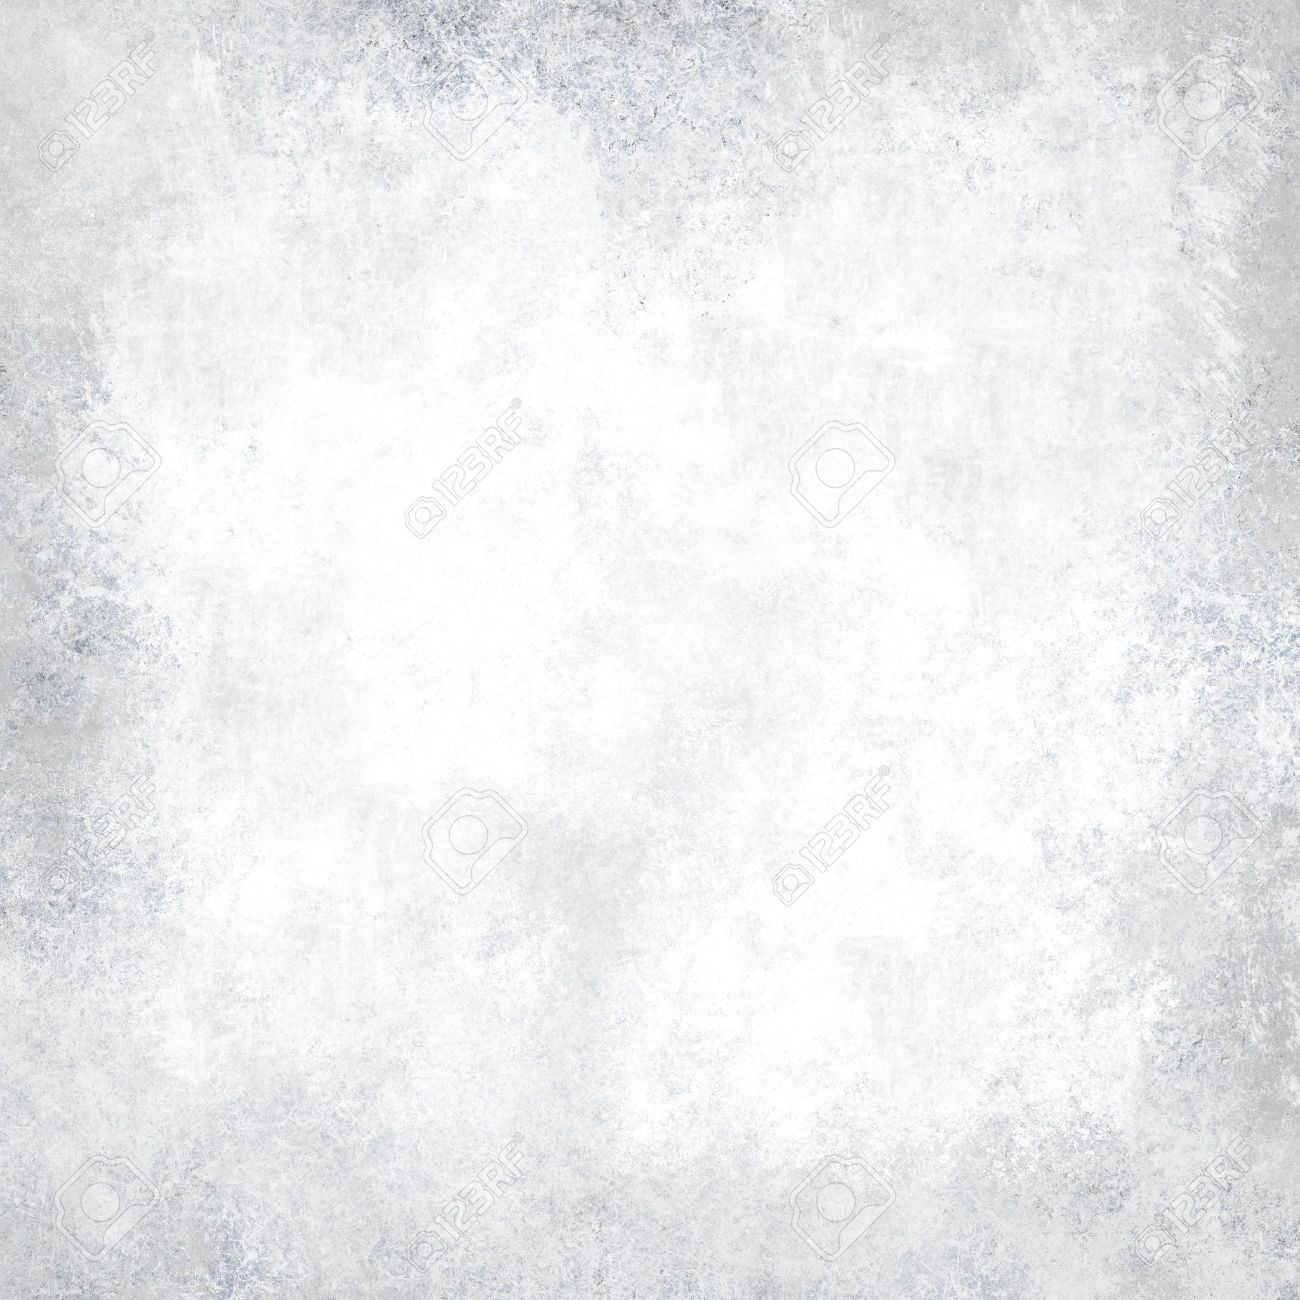 White and Grey Grunge Texture